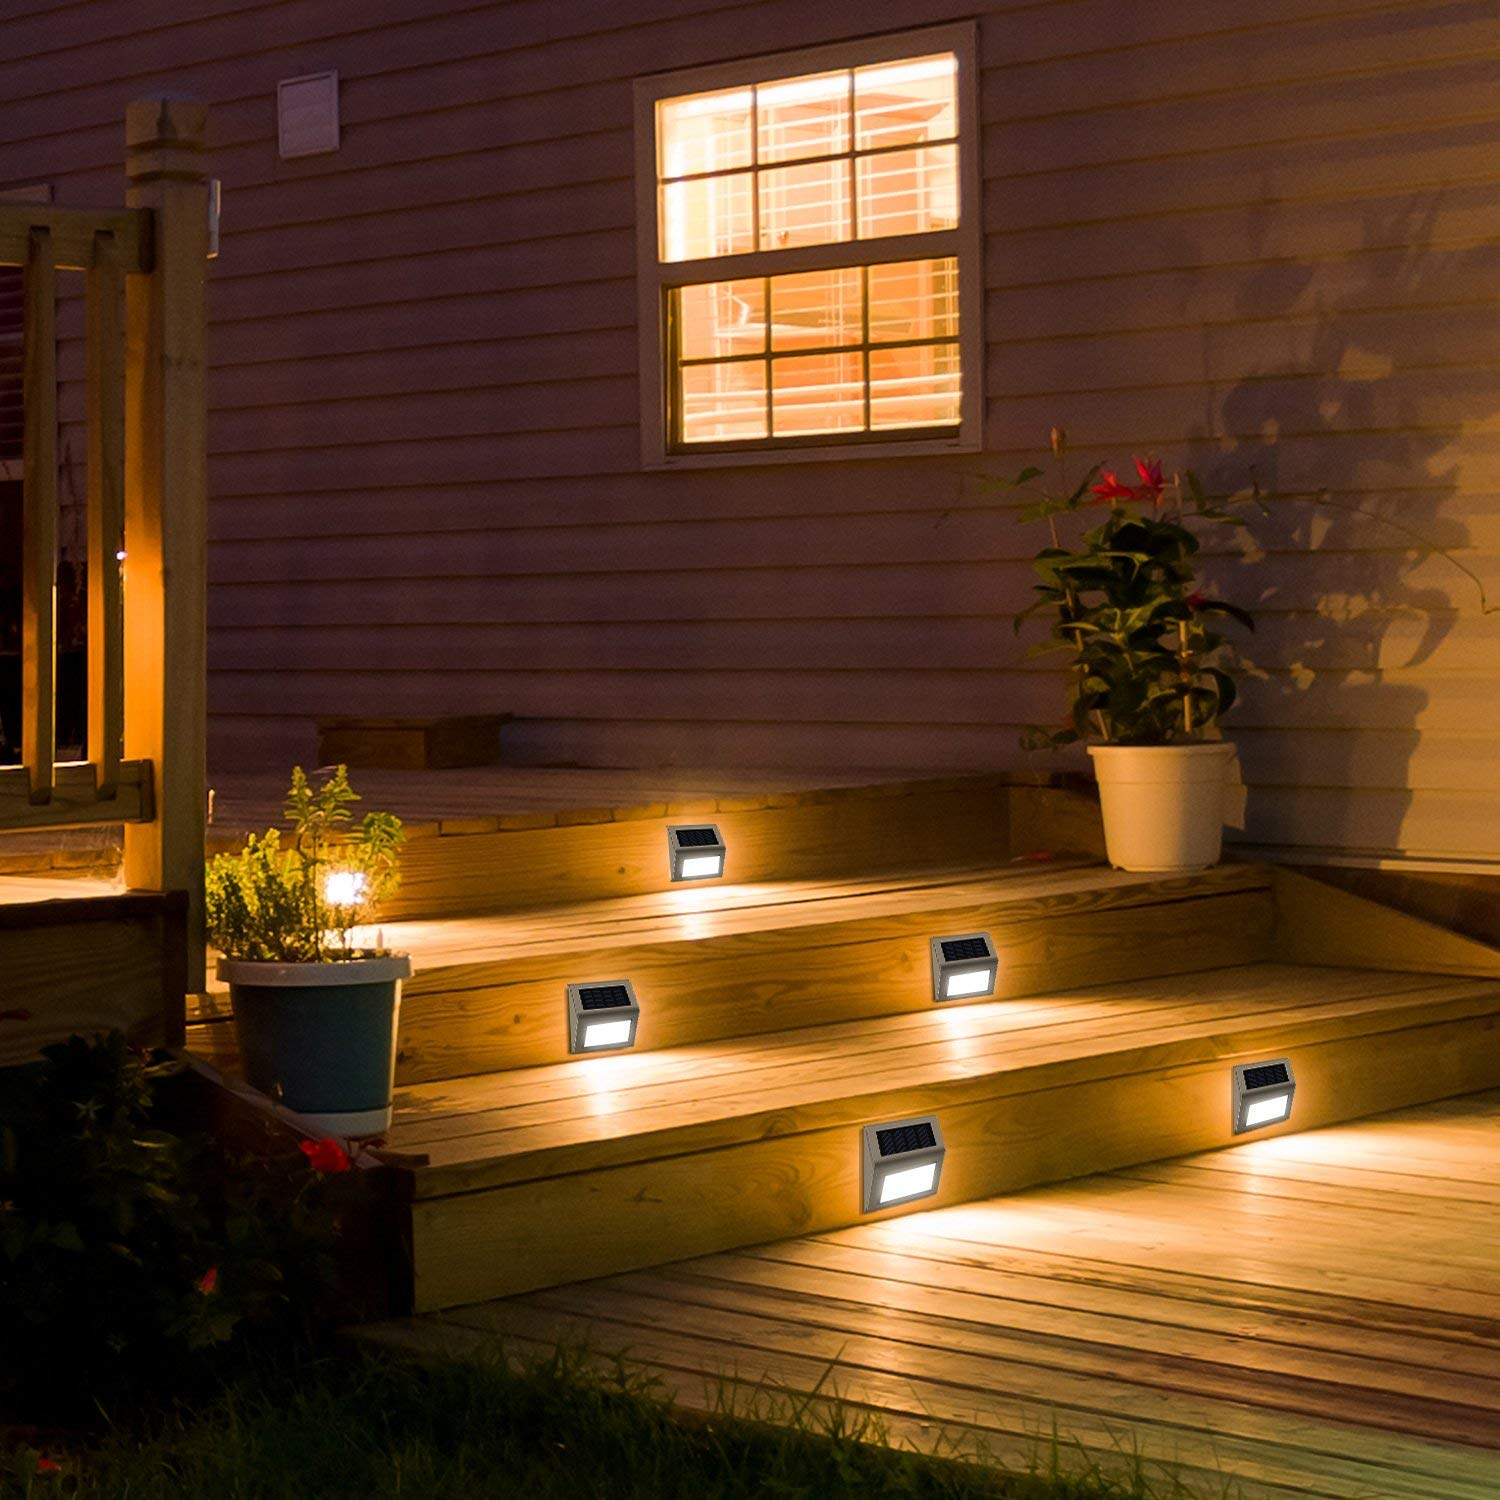 Solar Step Lights JACKYLED Pack of 4 LED Solar Lights Outdoor Weatherproof Solar Powered Light with Larger Battery Capacity for Steps Stairs Decks Fences Paths Patio